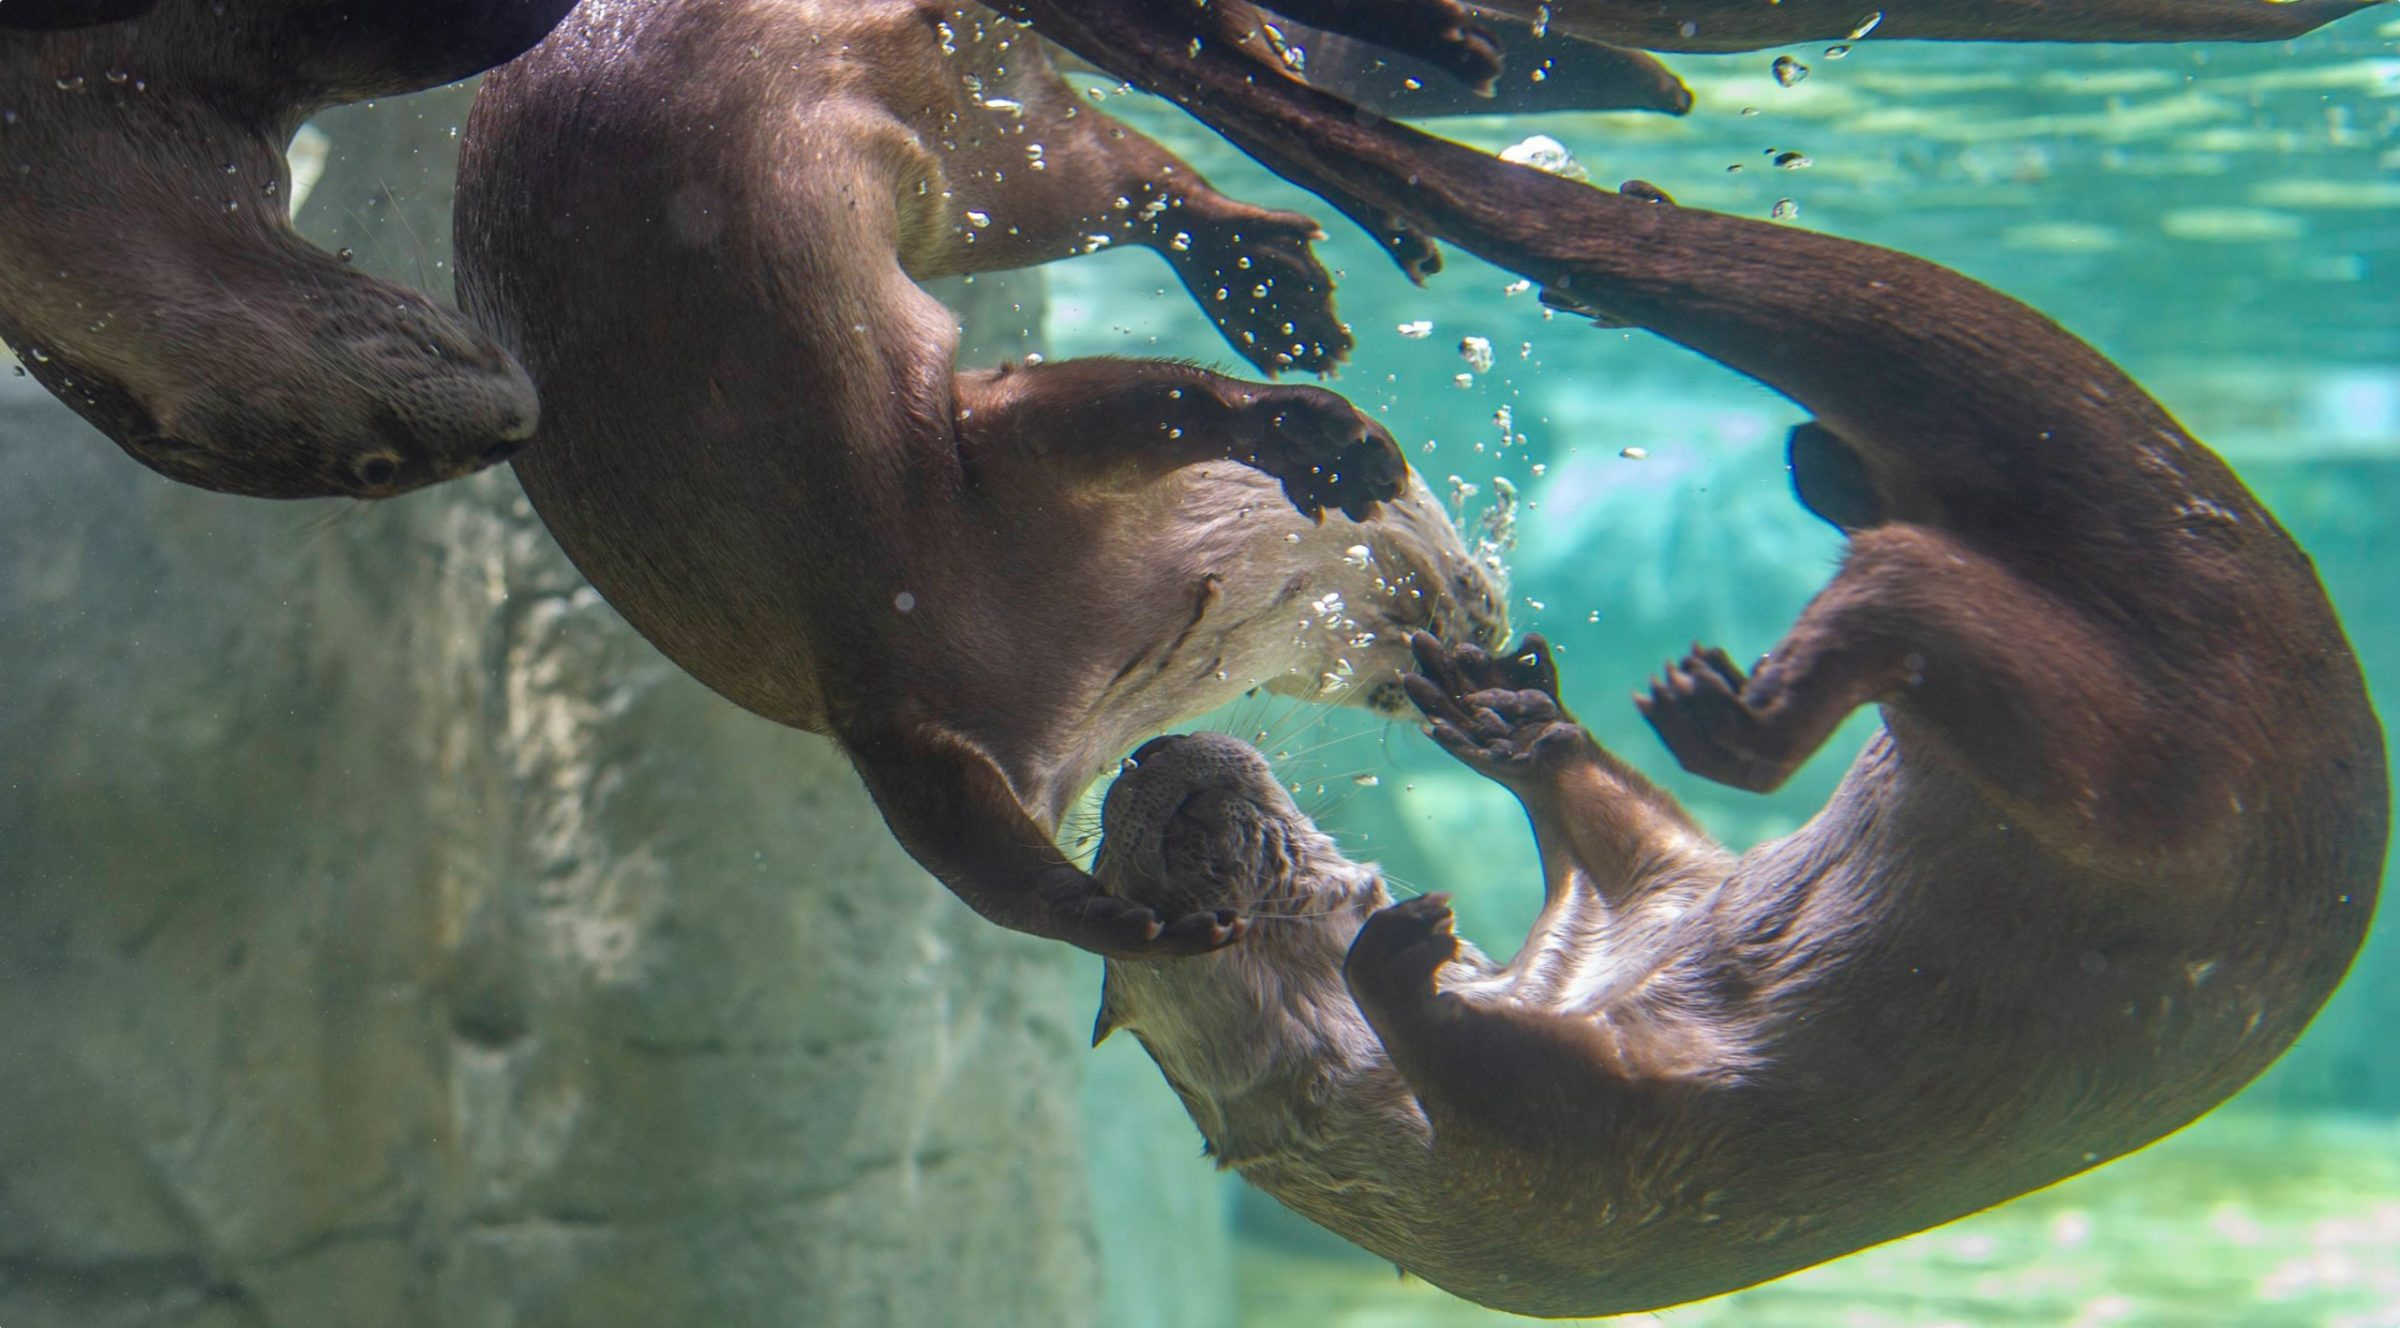 Two otters play underwater.